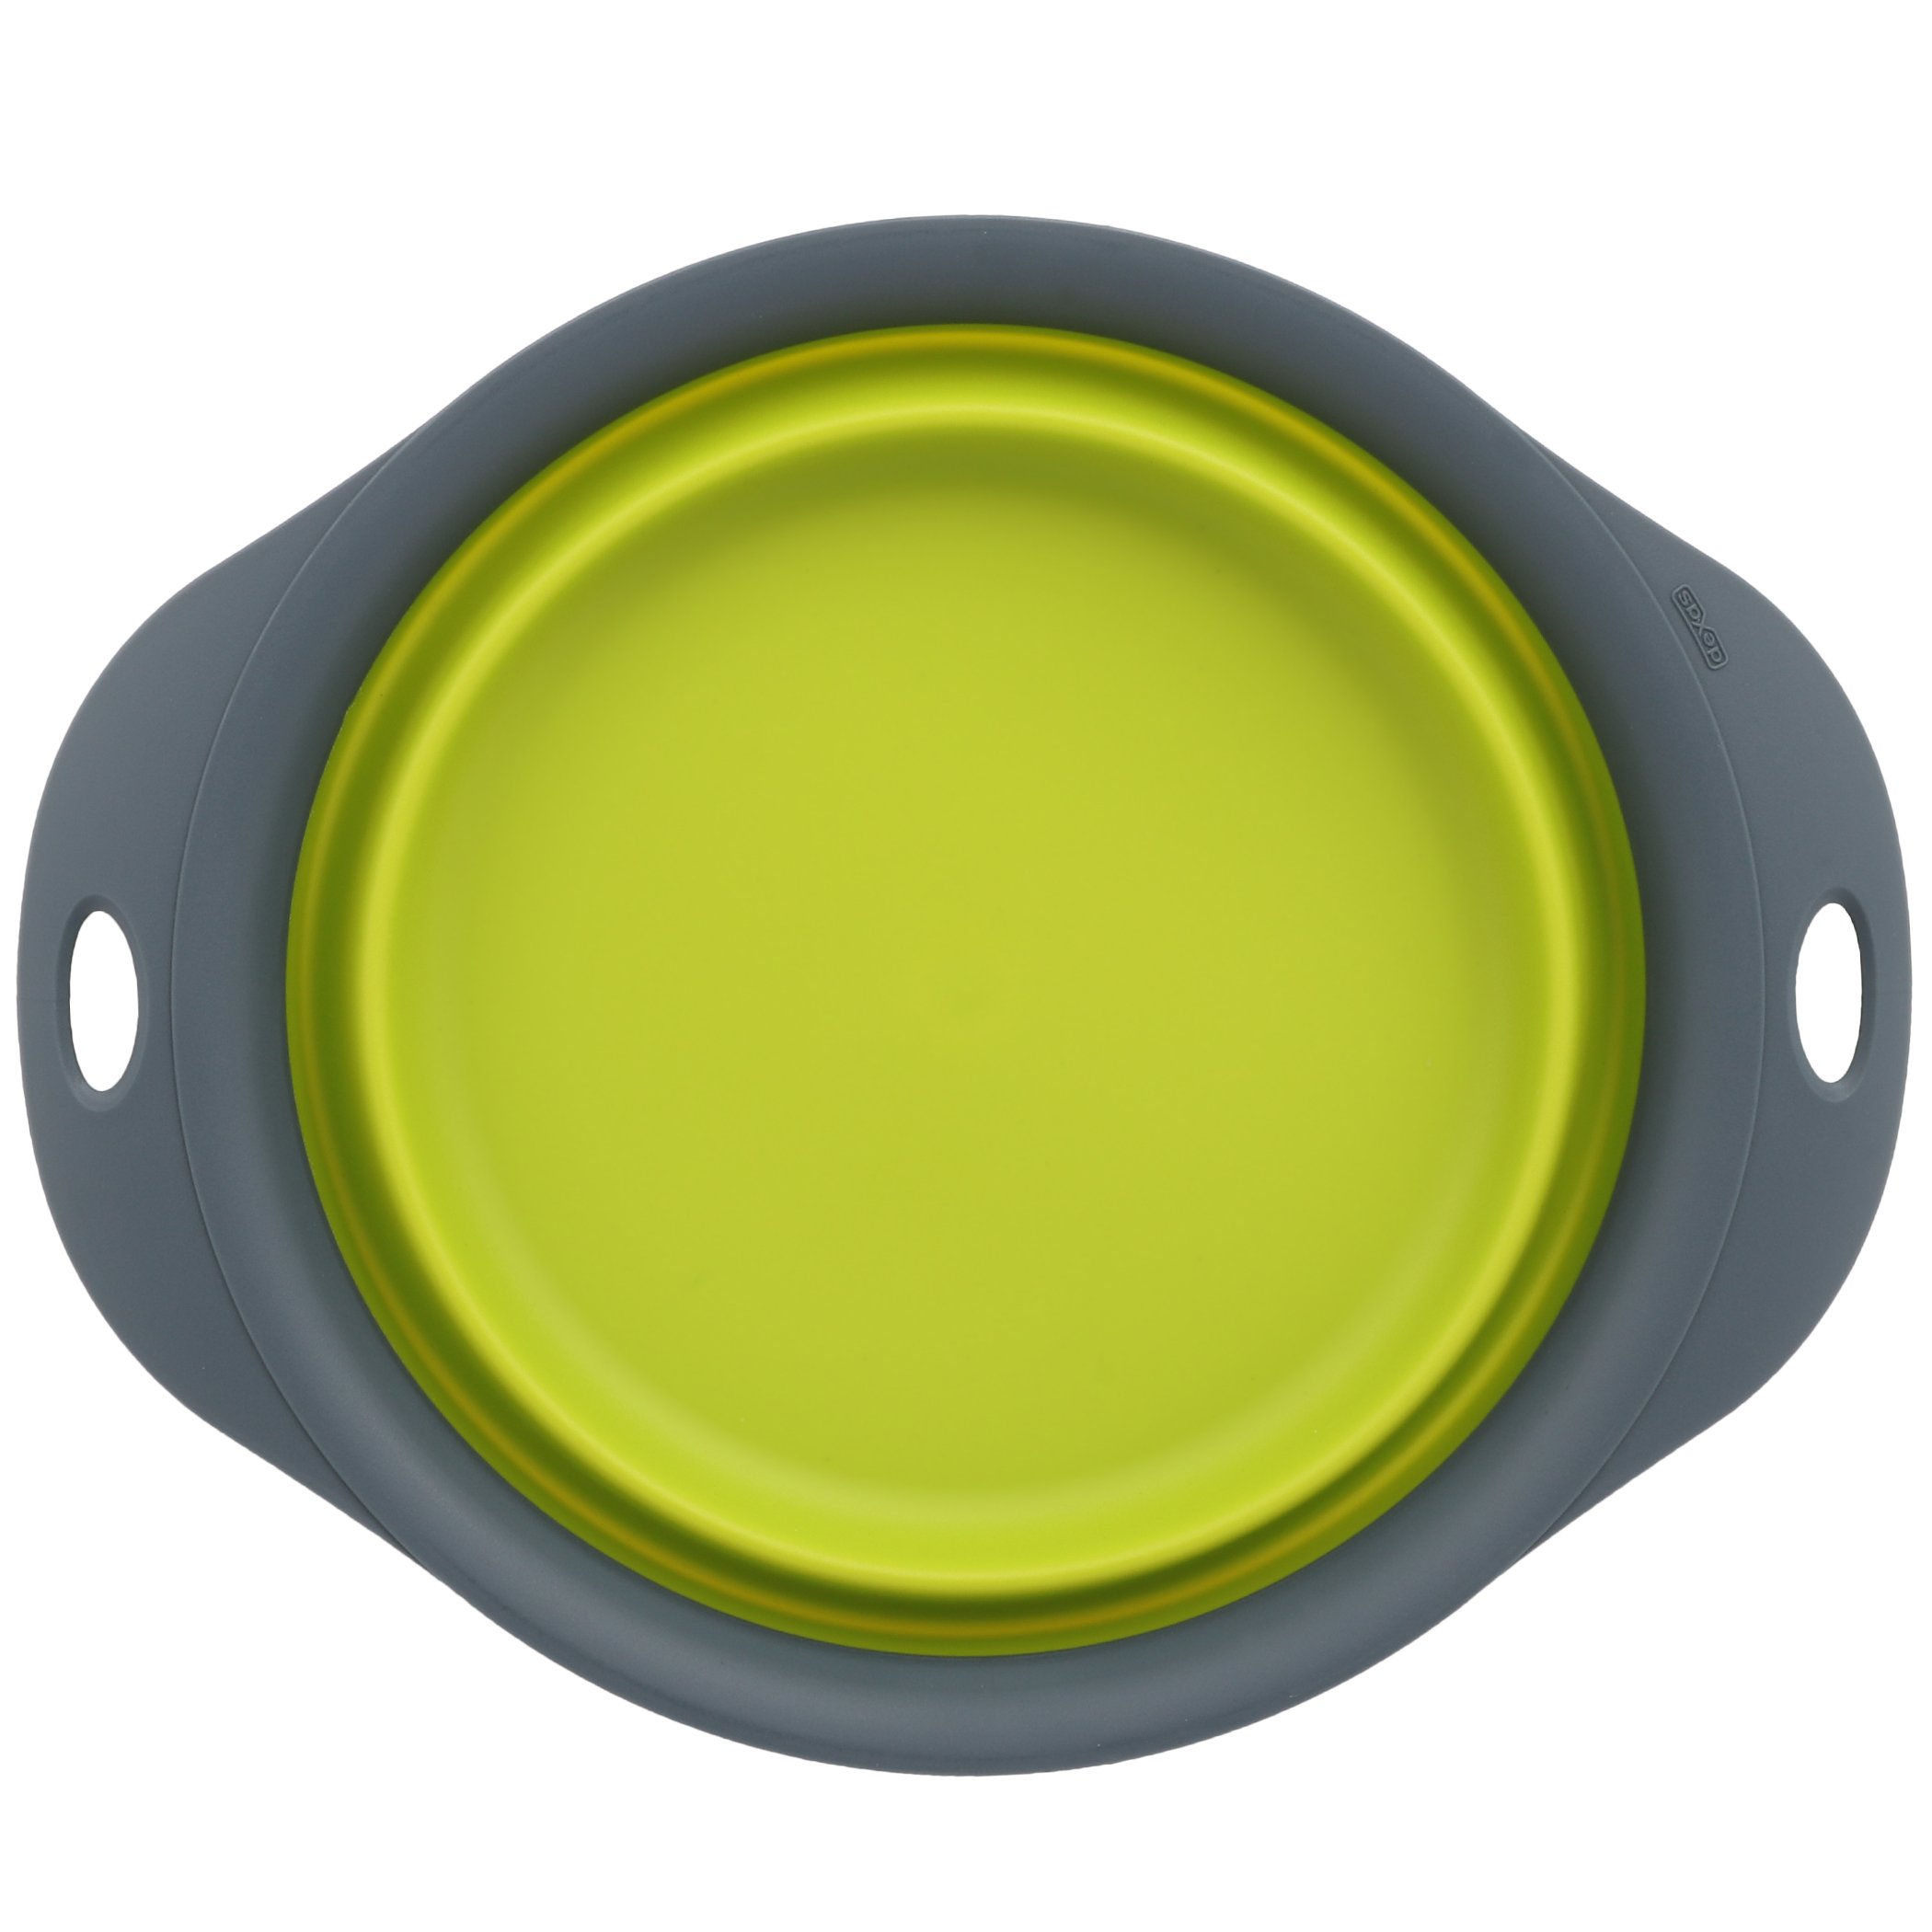 Dexas Popware for Pets Single Bowl Collapsible Travel Feeder, 6 Cup Capacity, Green